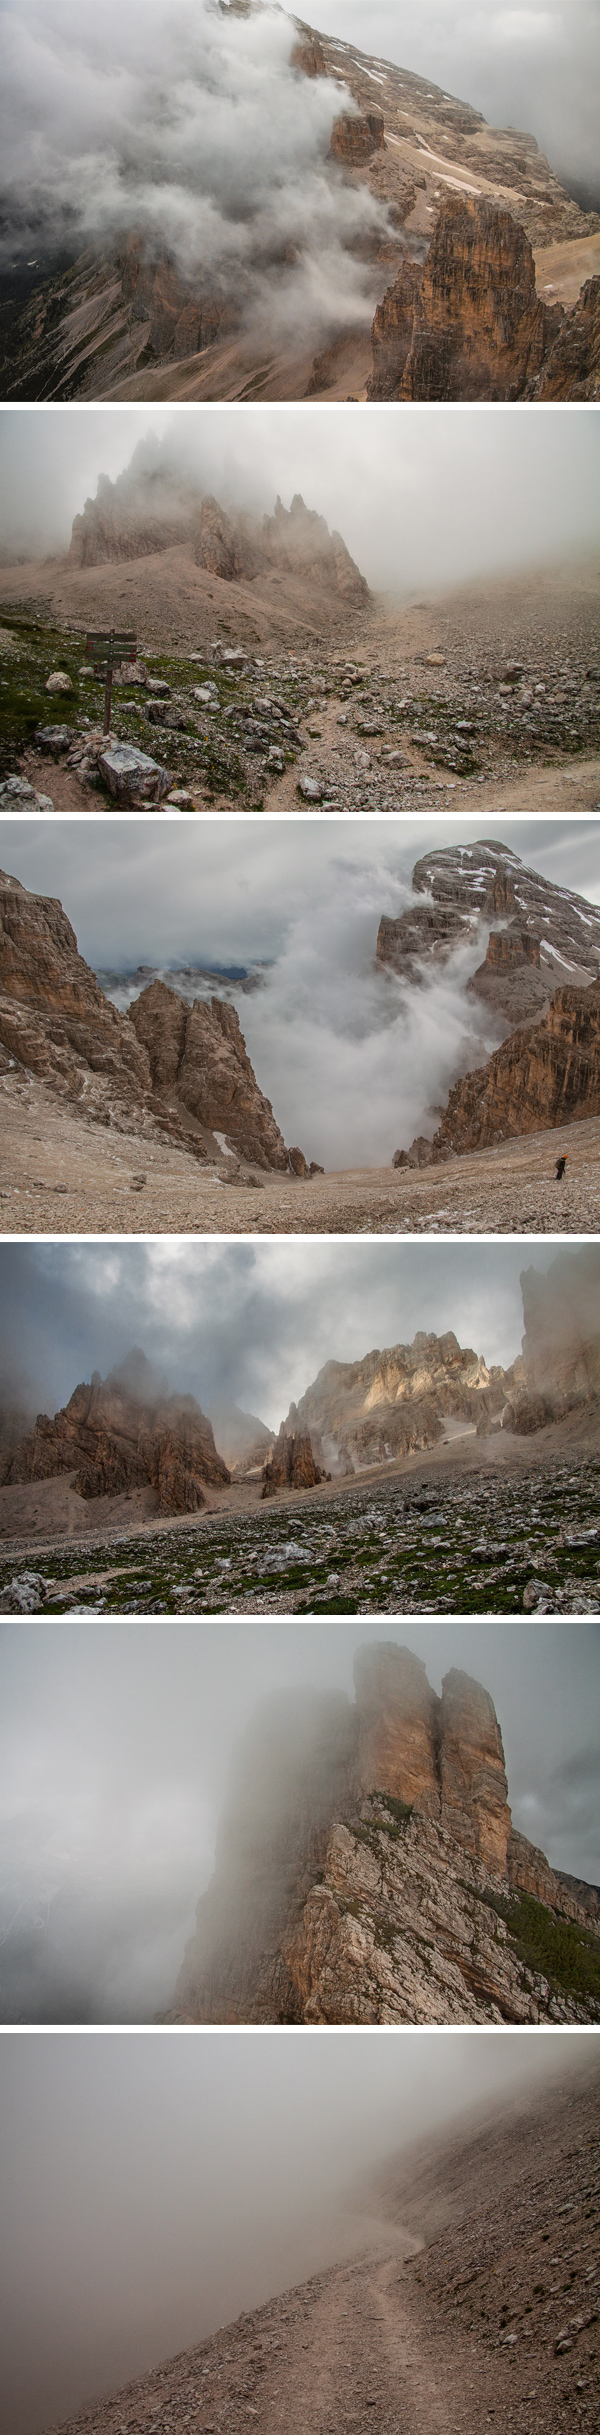 Dolomites Free Photos 1